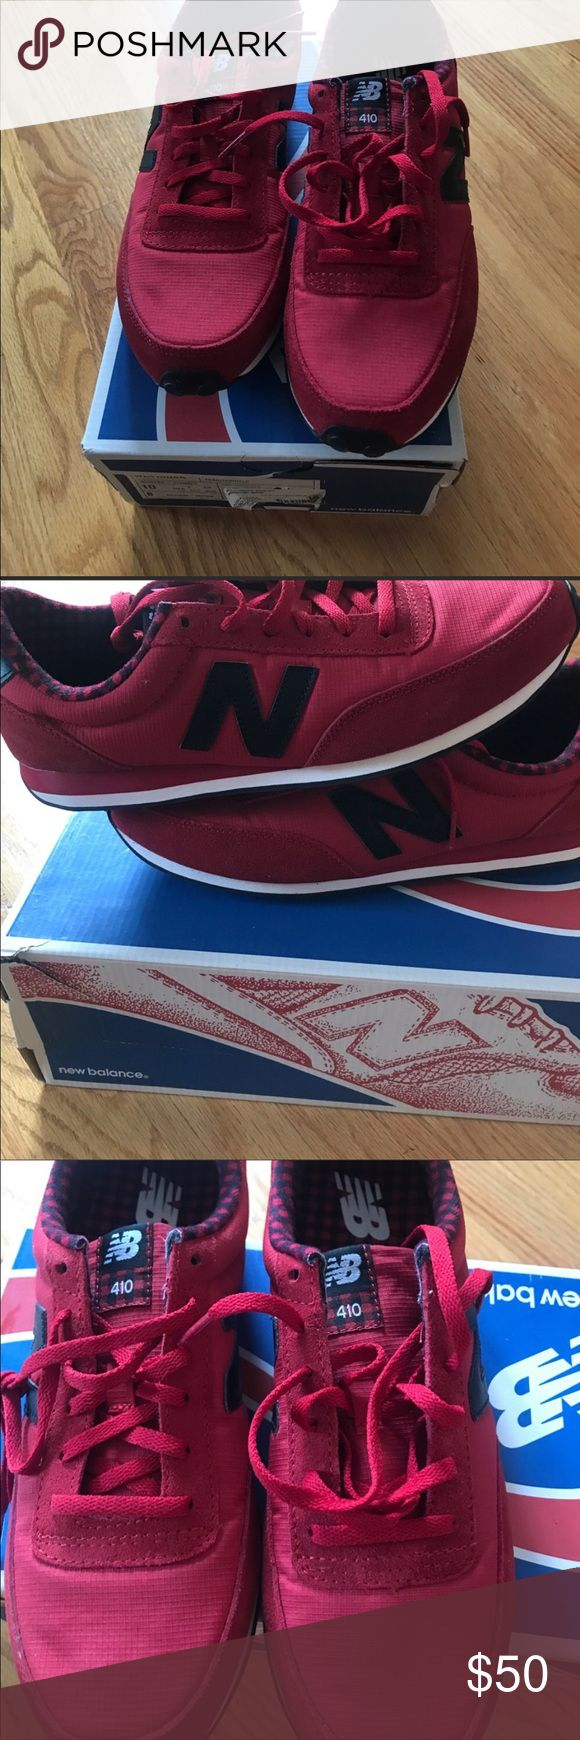 New Balance 410 women's New in box, no tags, repost, they didn't fit :( willing to trade for other shoes 10.5 or 10 or something of equal value. New Balance Shoes Sneakers